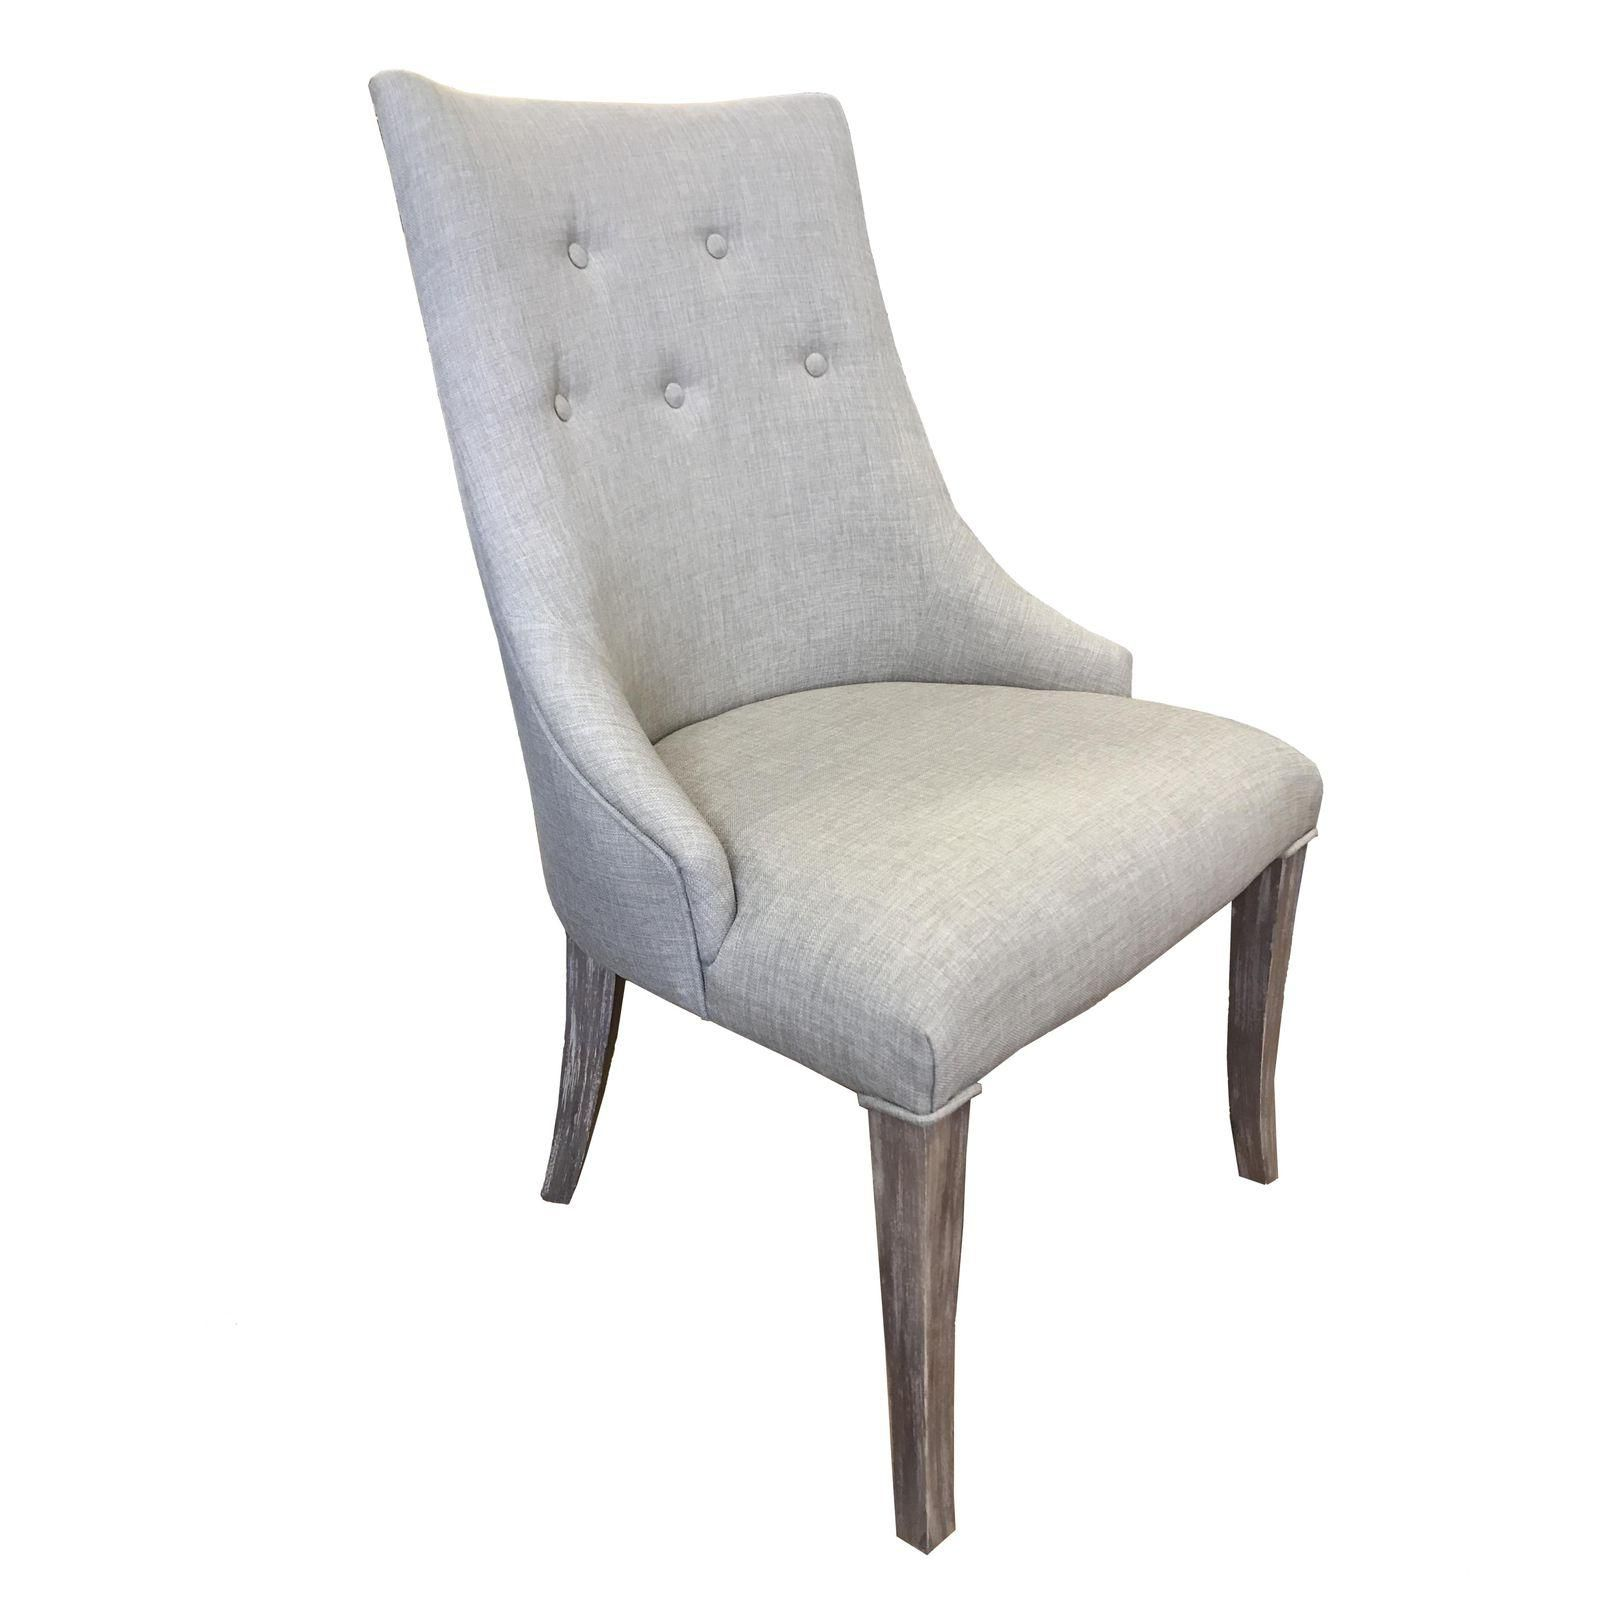 5ab7f278fbf Tufted Rustic Beige Linen White Wash Dining Chair - Image 2 of 4